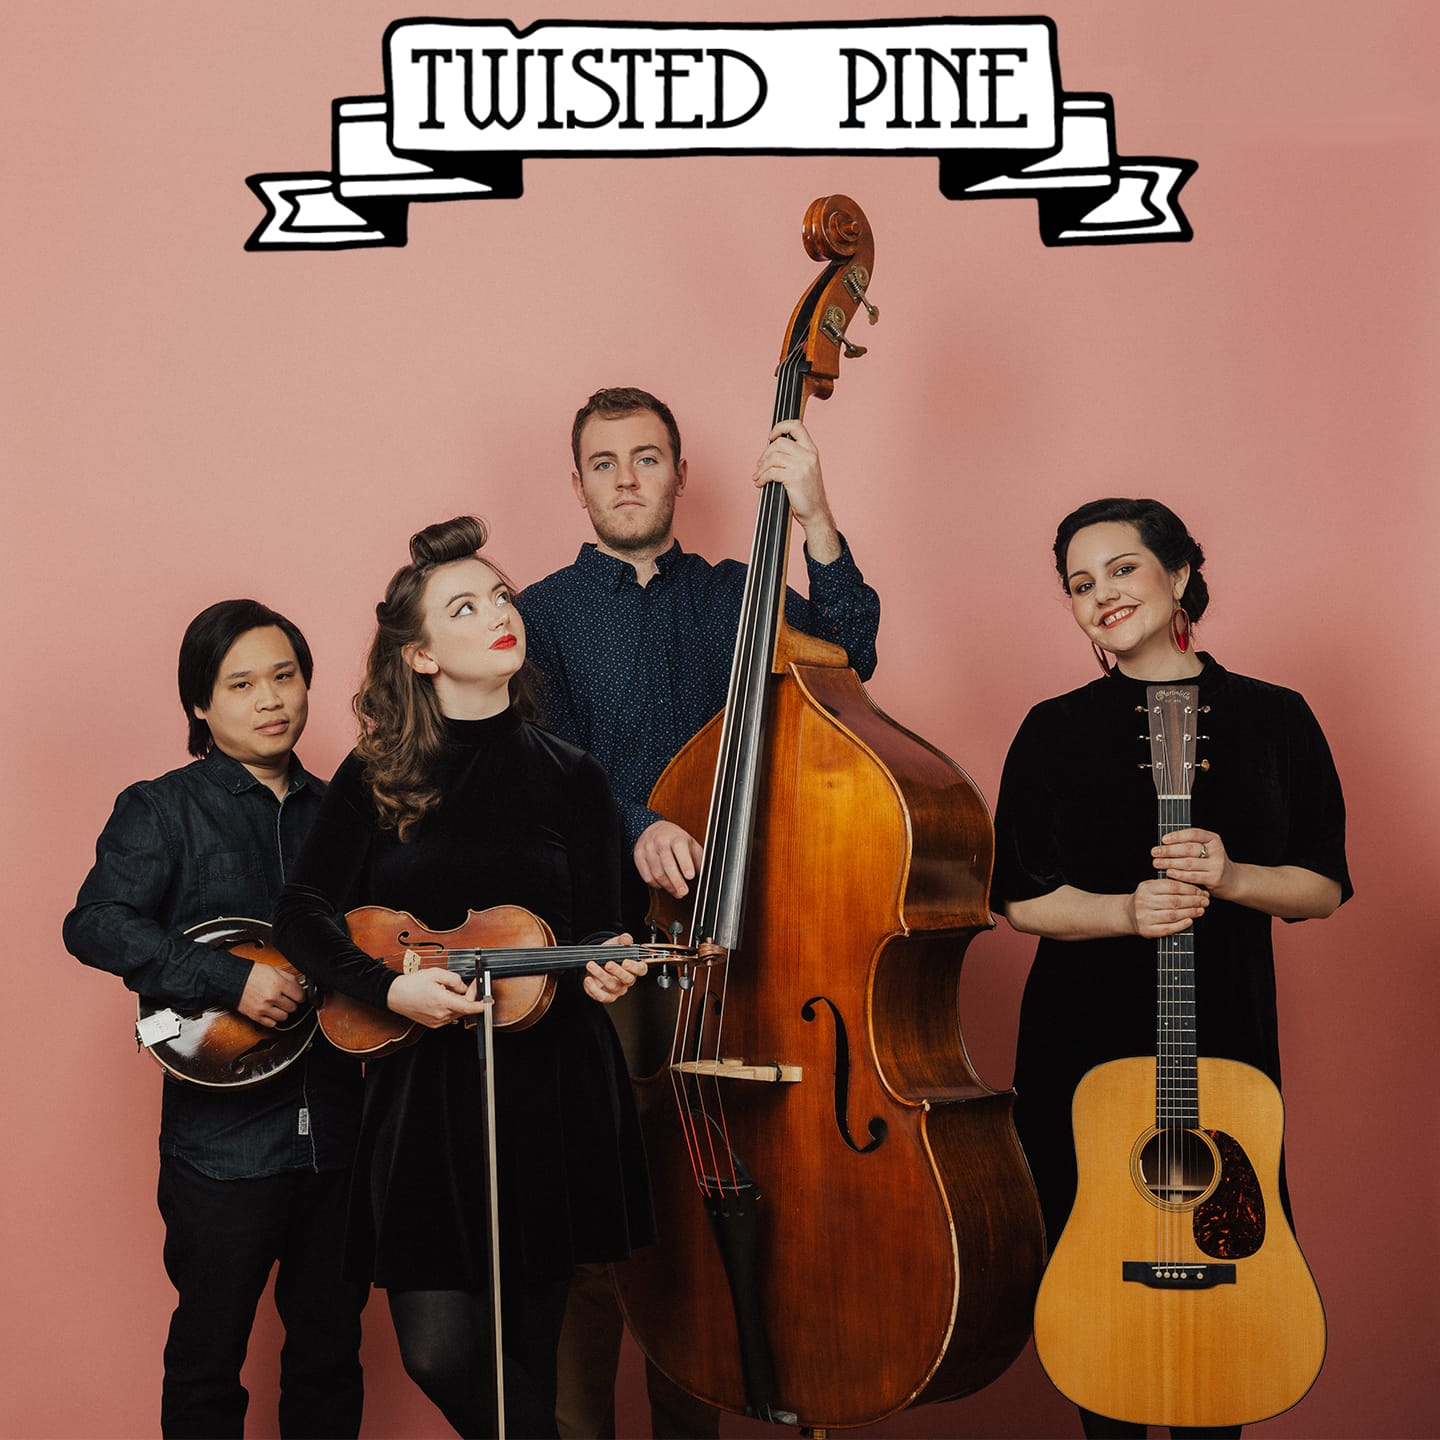 Twisted-Pine_1440_OPTIM.jpg